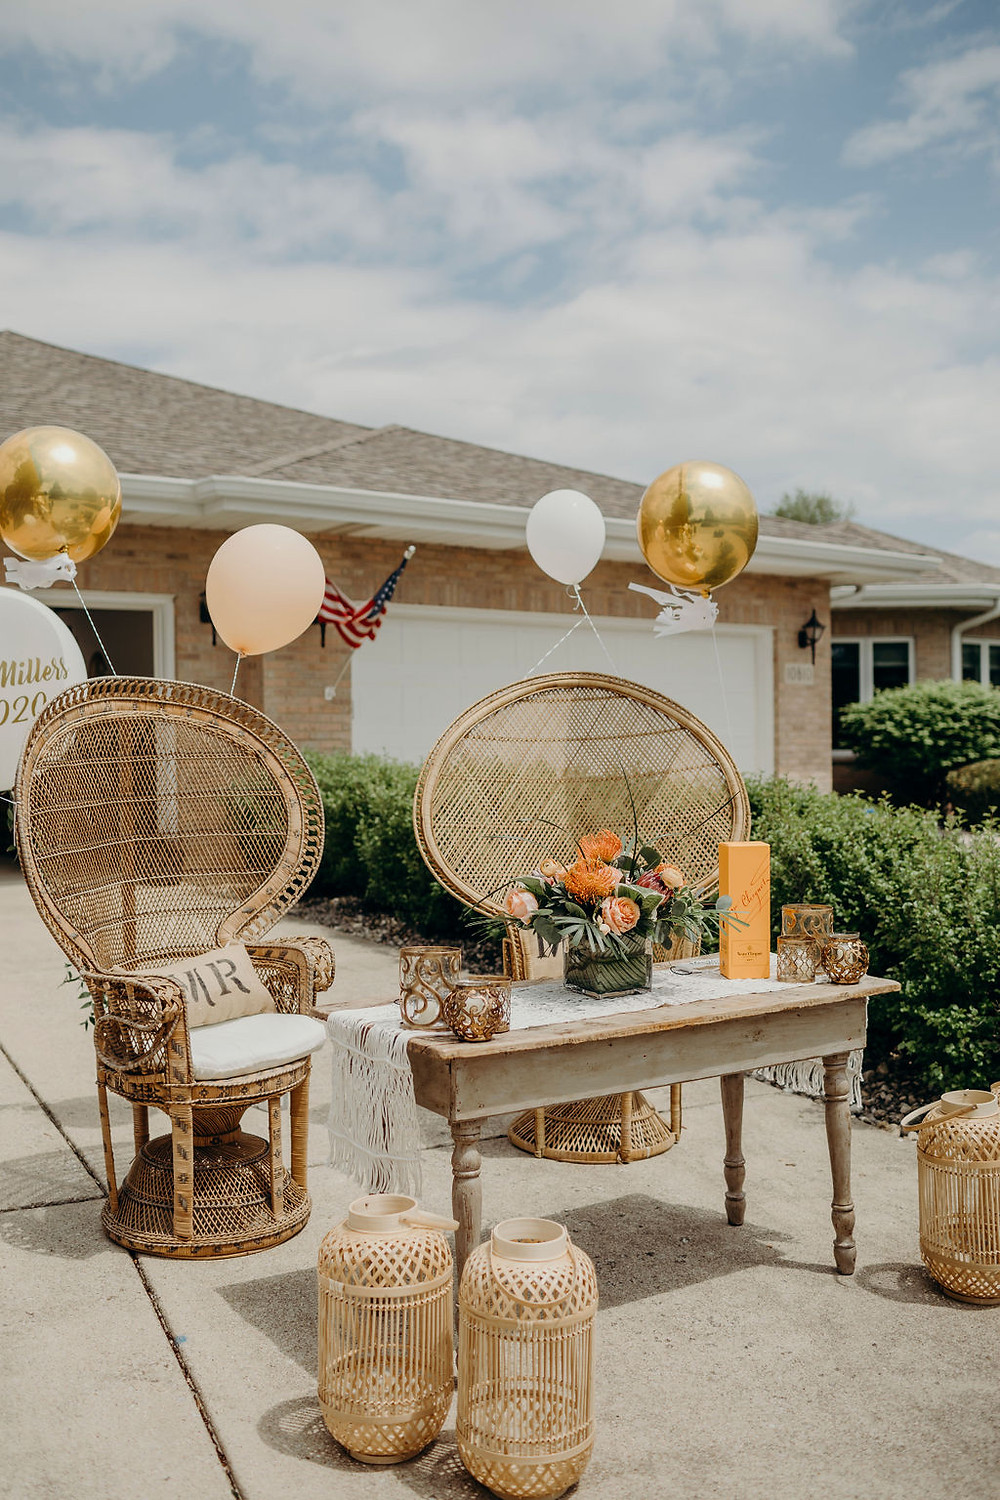 peacock chairs and sweetheart table create perfect driveway bridal shower for Chicago couple, specialty rentals from Elements Preserved Vintage Rental